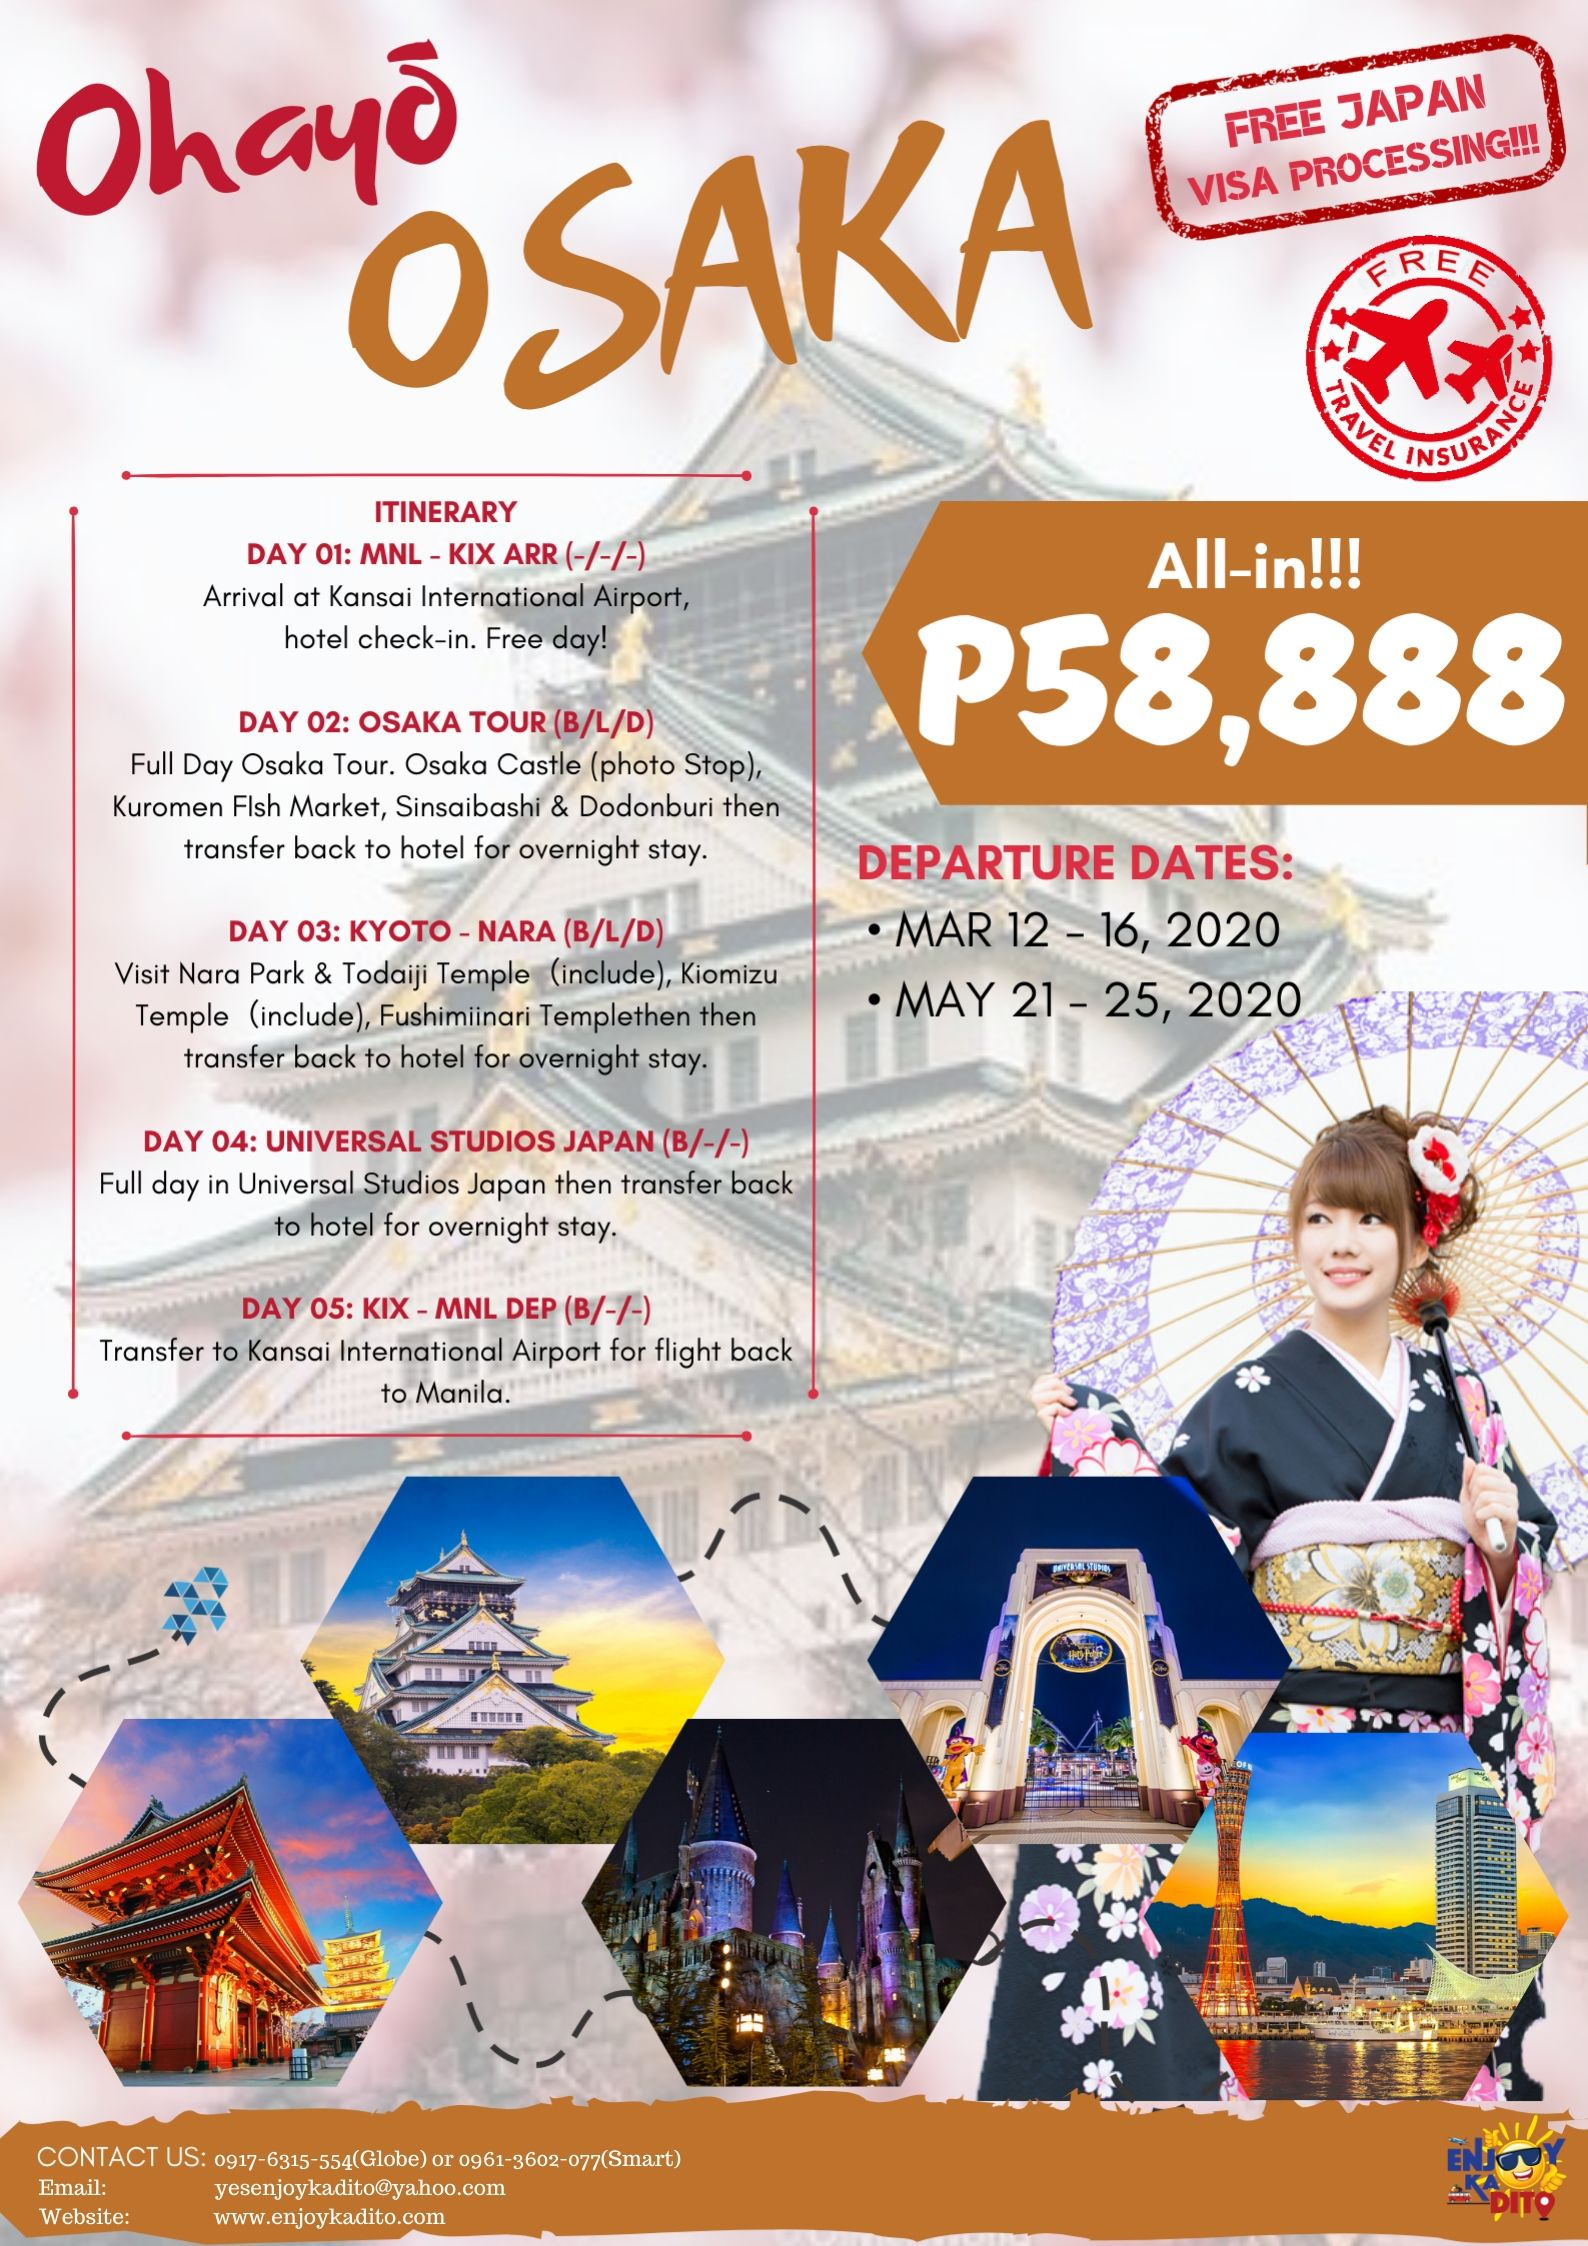 Ohayo by MCP Greenery Travel and Tours